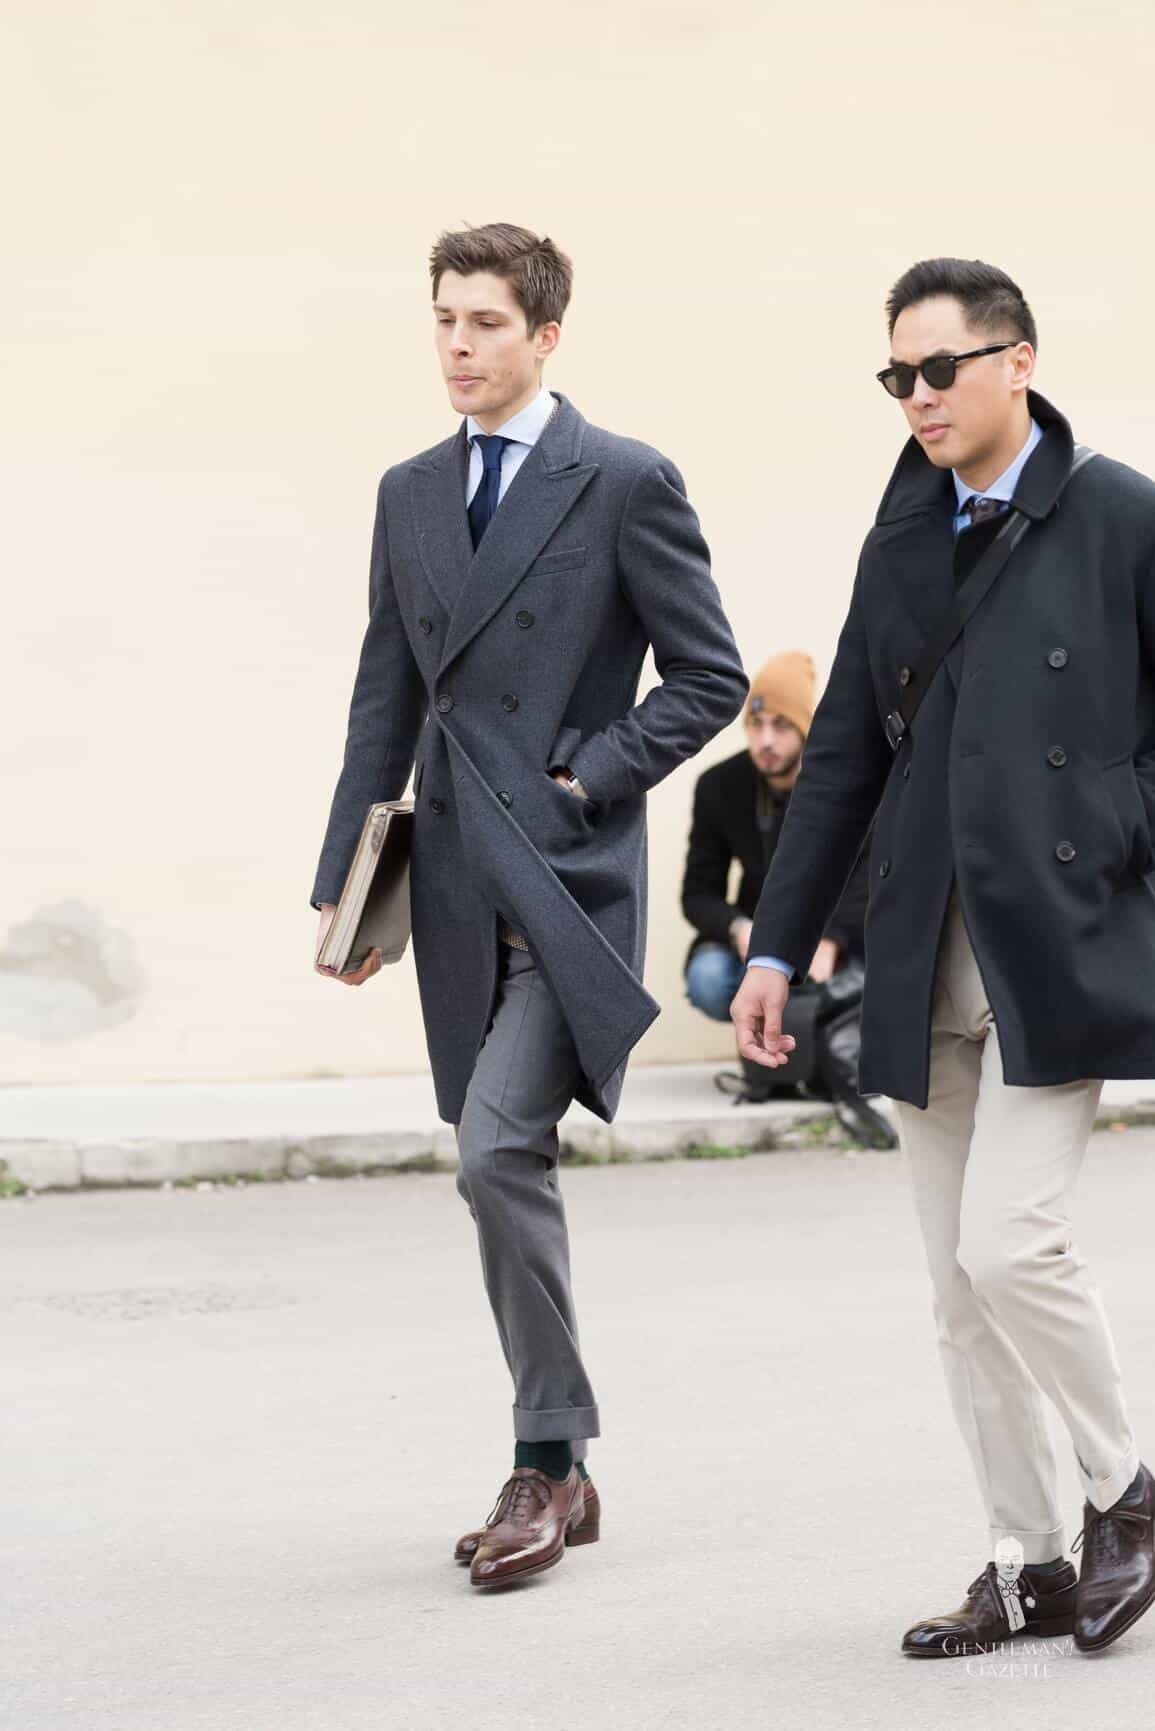 Pitti Uomo 89 - Street Style Outfits & What You Can Learn From It ...